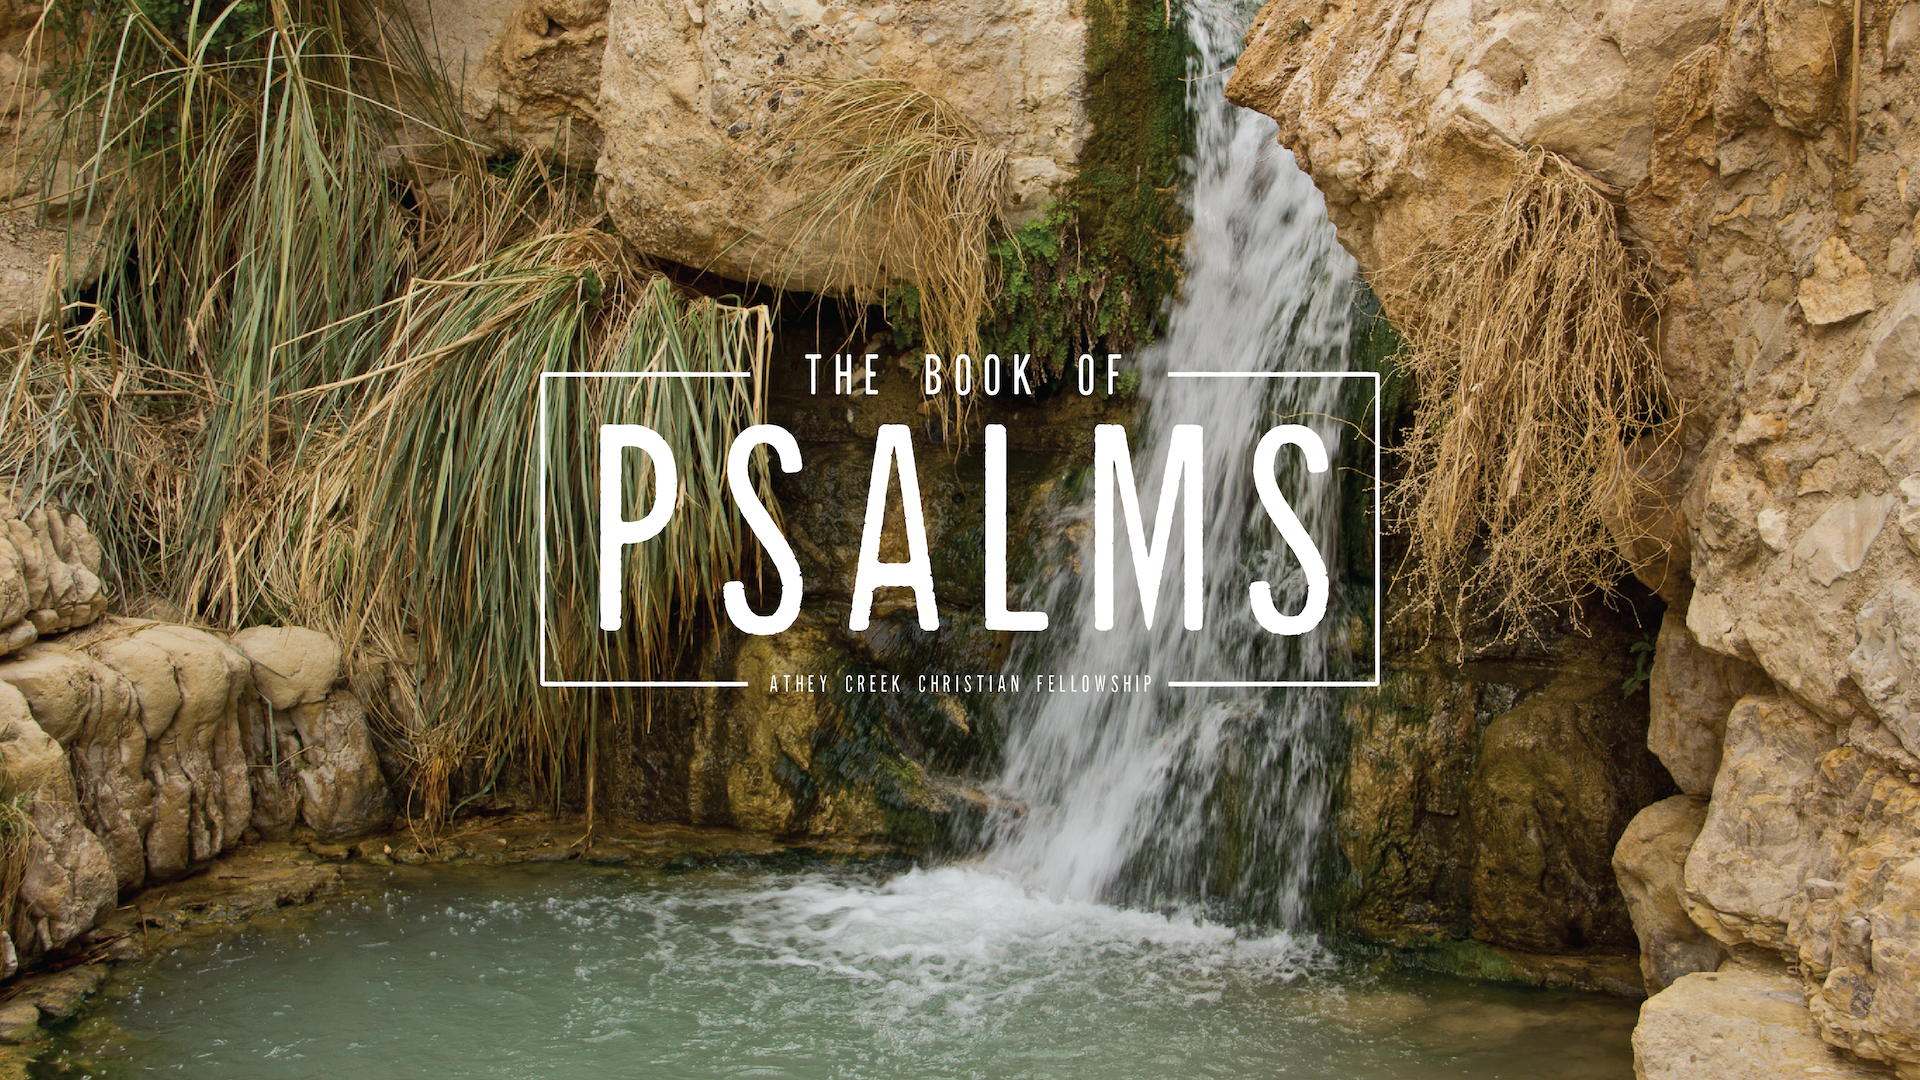 Poster forThrough the Bible (Psalms 75-77)